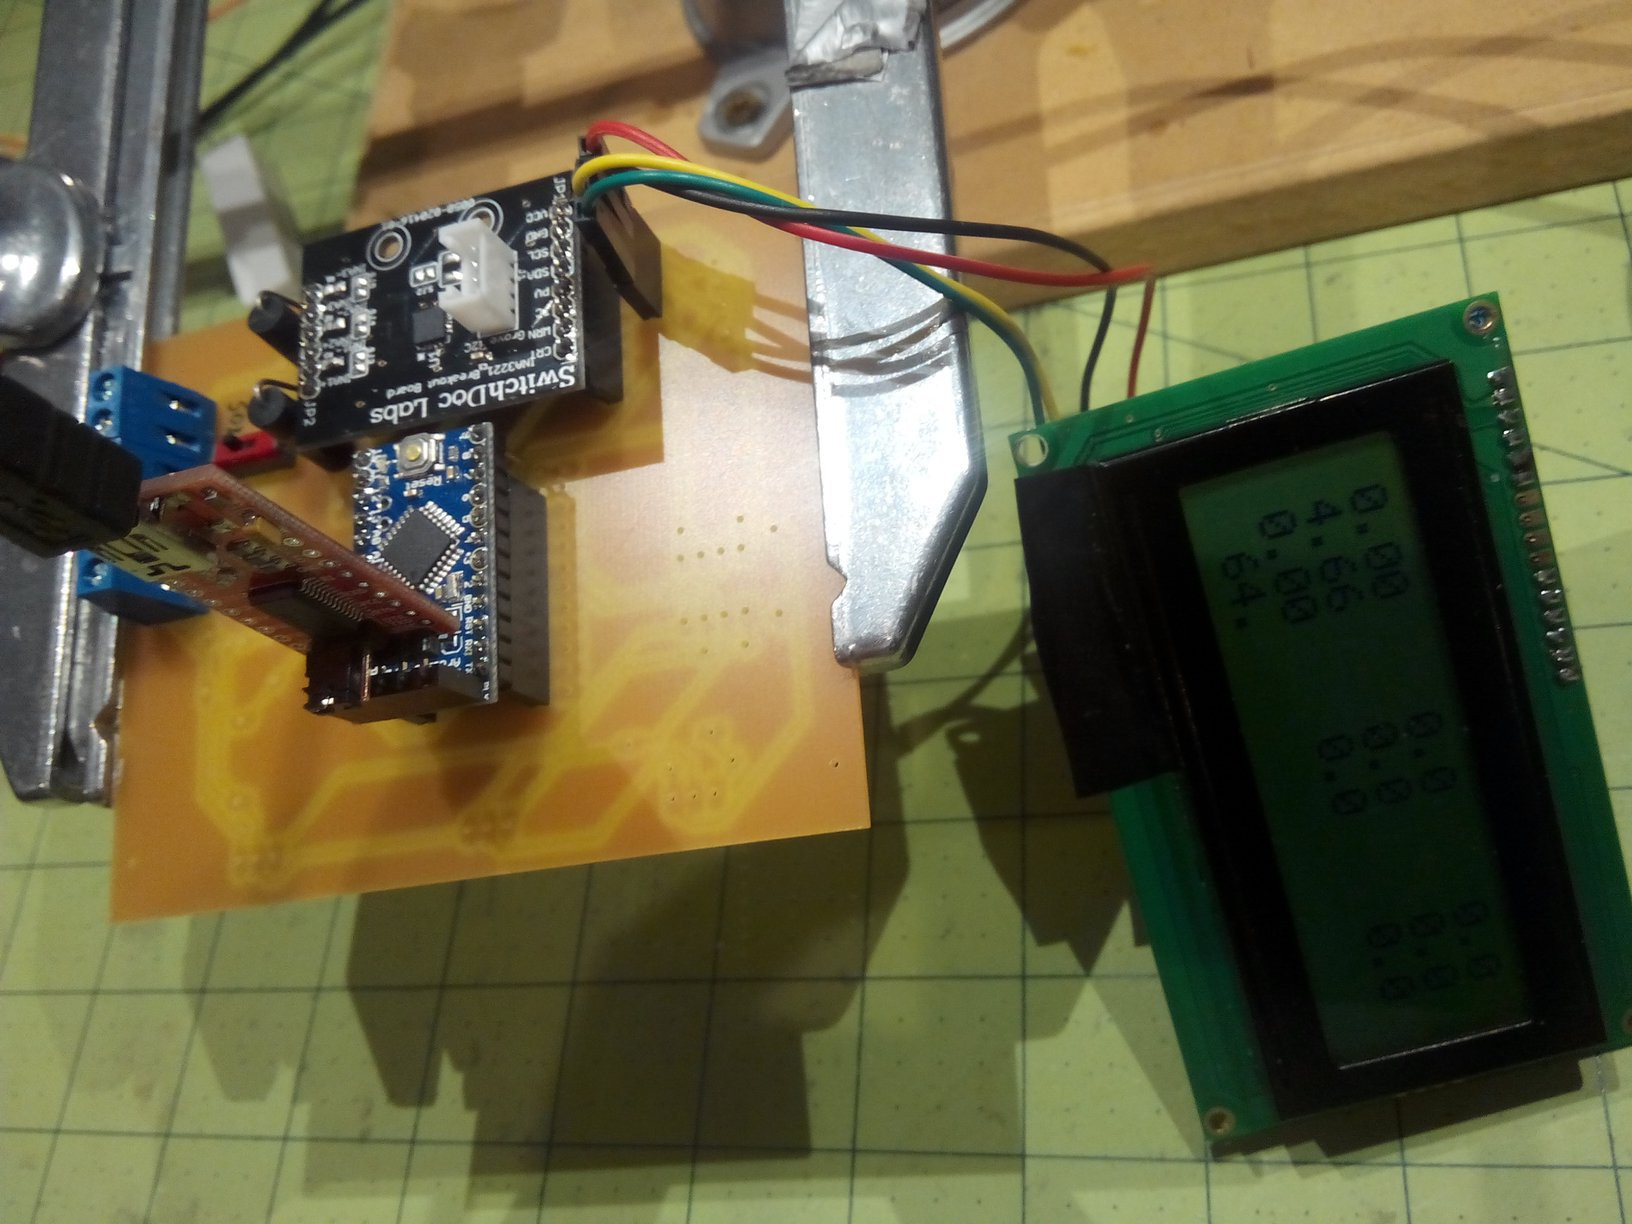 Project Arduino Mppt Solar Charge Controller Circuit Pull Up Resistor Battery Charger I Did Not Expect The Lcd To Work In Addition Ina3221 Power Monitor On I2c Bus But It Does Am Powering Pro Mini With An 84